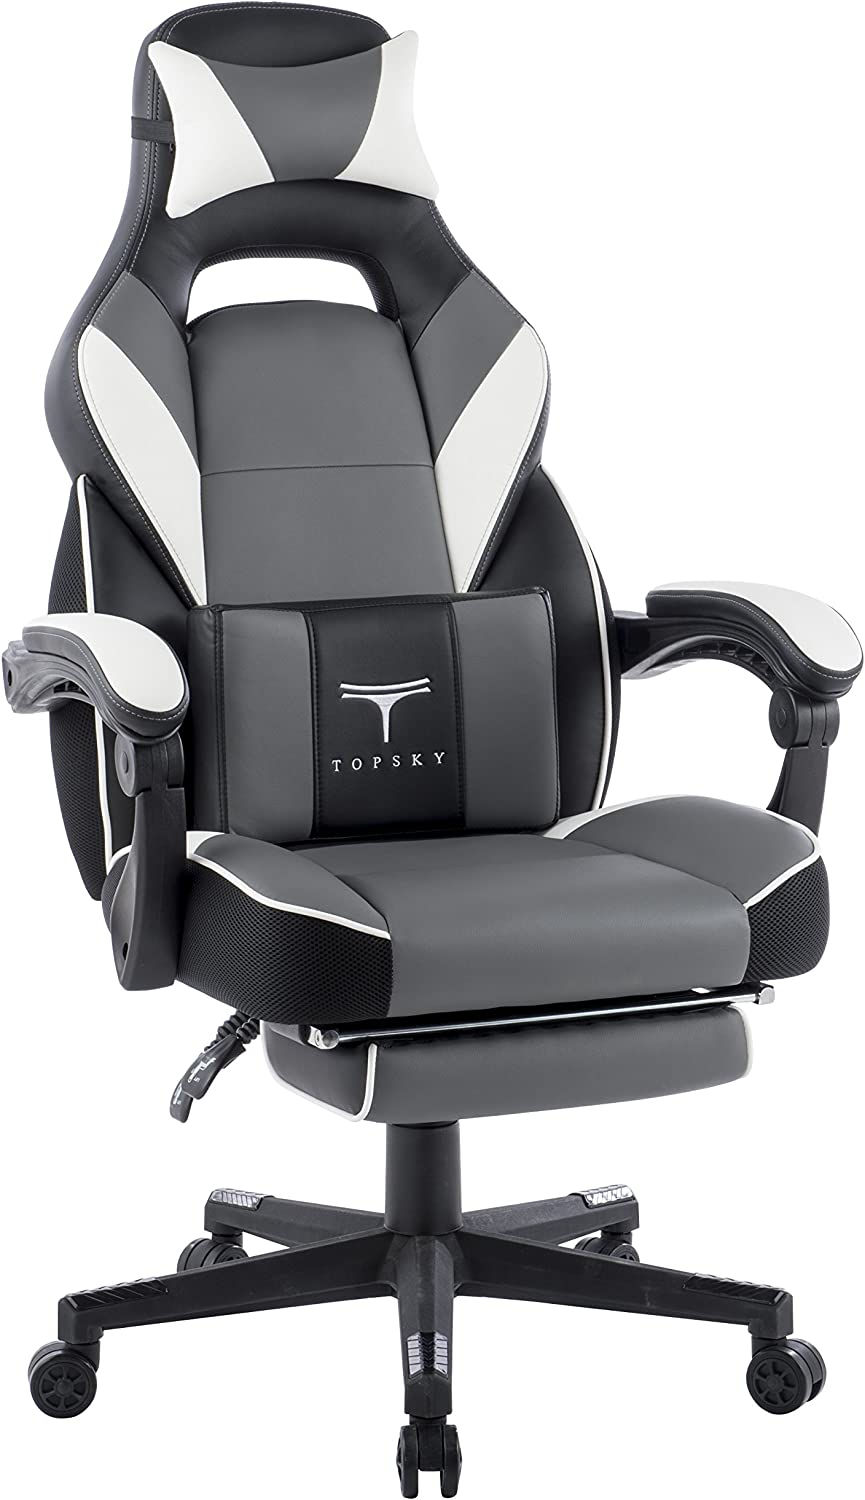 TOPSKY High Back Racing Style PU Leather Executive Computer Gaming Office Chair Ergonomic Reclining Design with Lumbar Cushion Footrest and Headrest (New Black&Gray) …